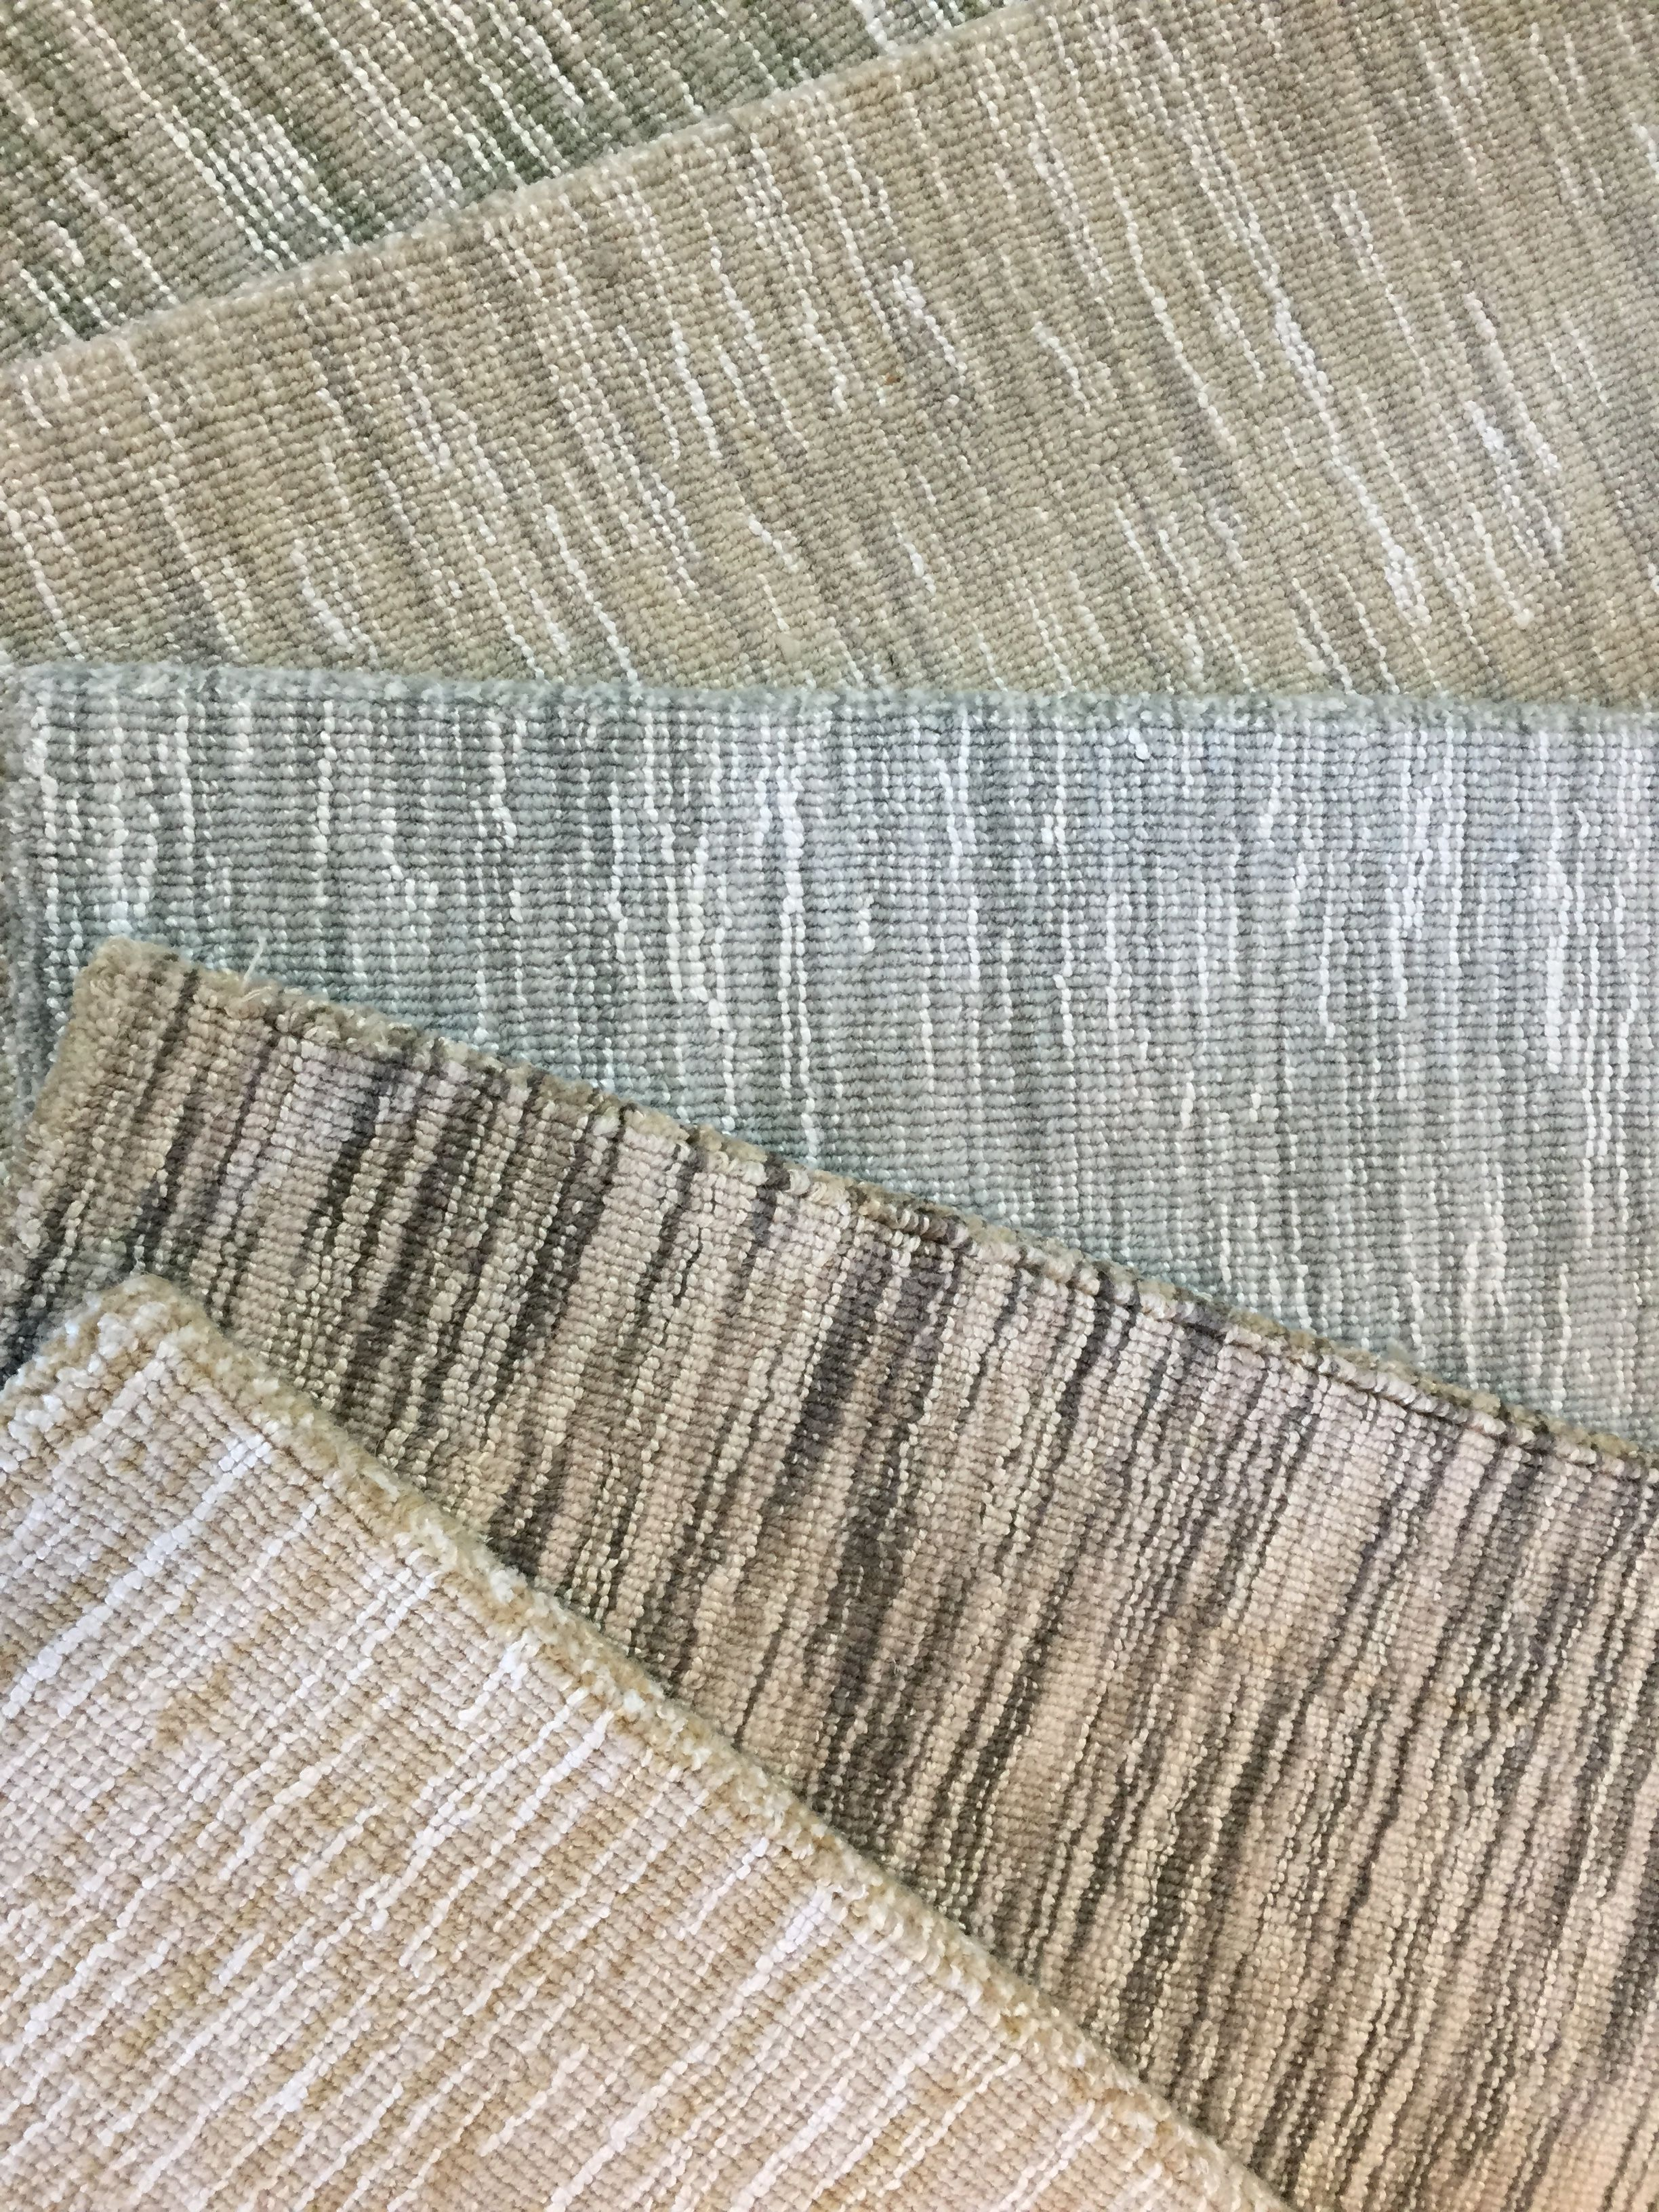 A Wool And Viscose Blend Carpet That Comes 15 Wide Offered For Wall To Wall Installation Or Area Rugs Of Any Rugs On Carpet Carpet Orange Wall Installation